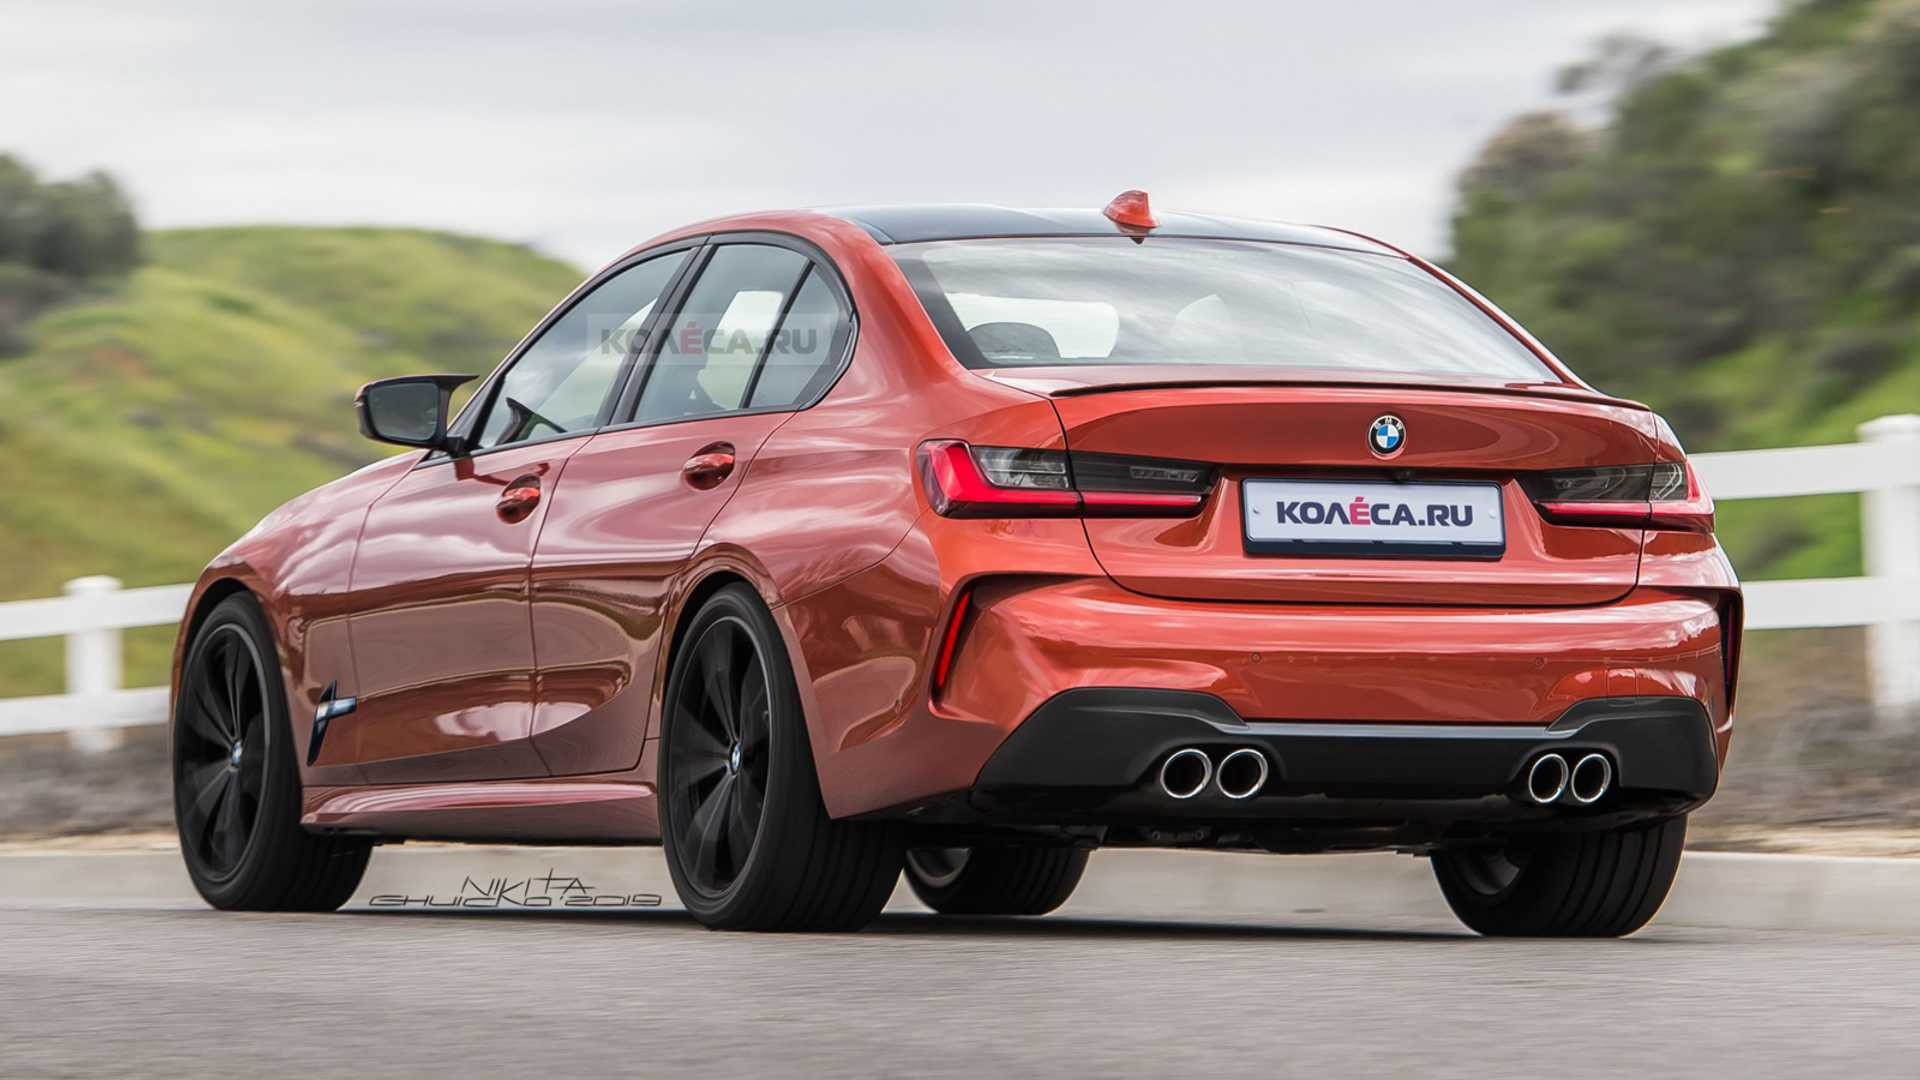 Could The New Bmw M3 Have More Than 510 Horsepower